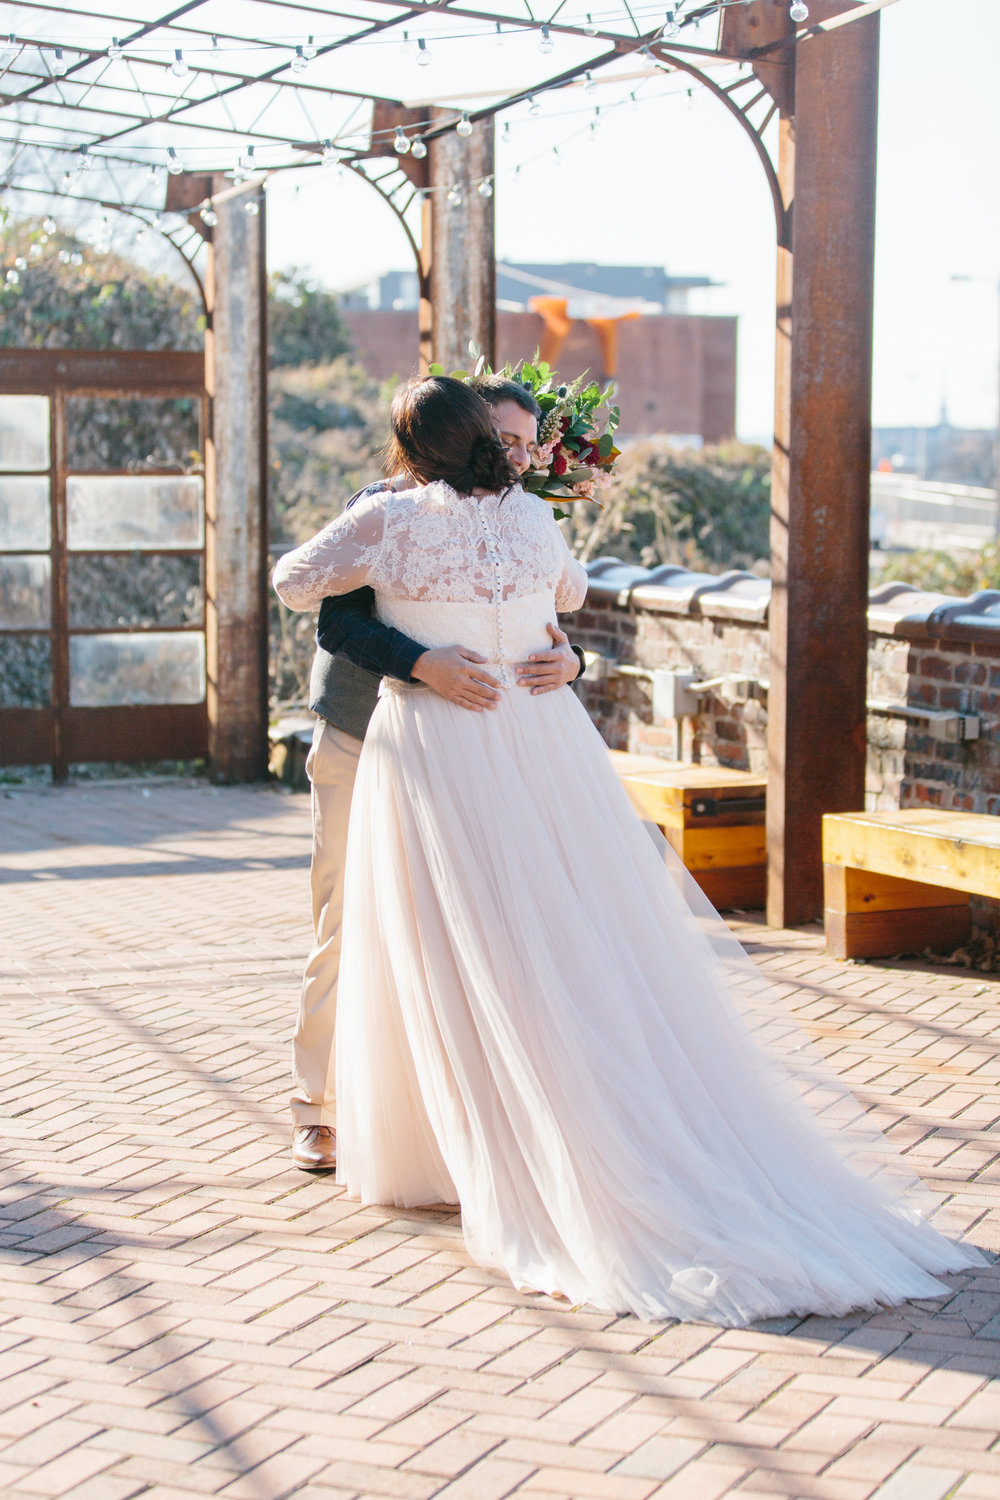 Lauren_Jeremy_Standard_Wedding_Knoxville_Abigail_Malone_Photography_FIlm-172.jpg